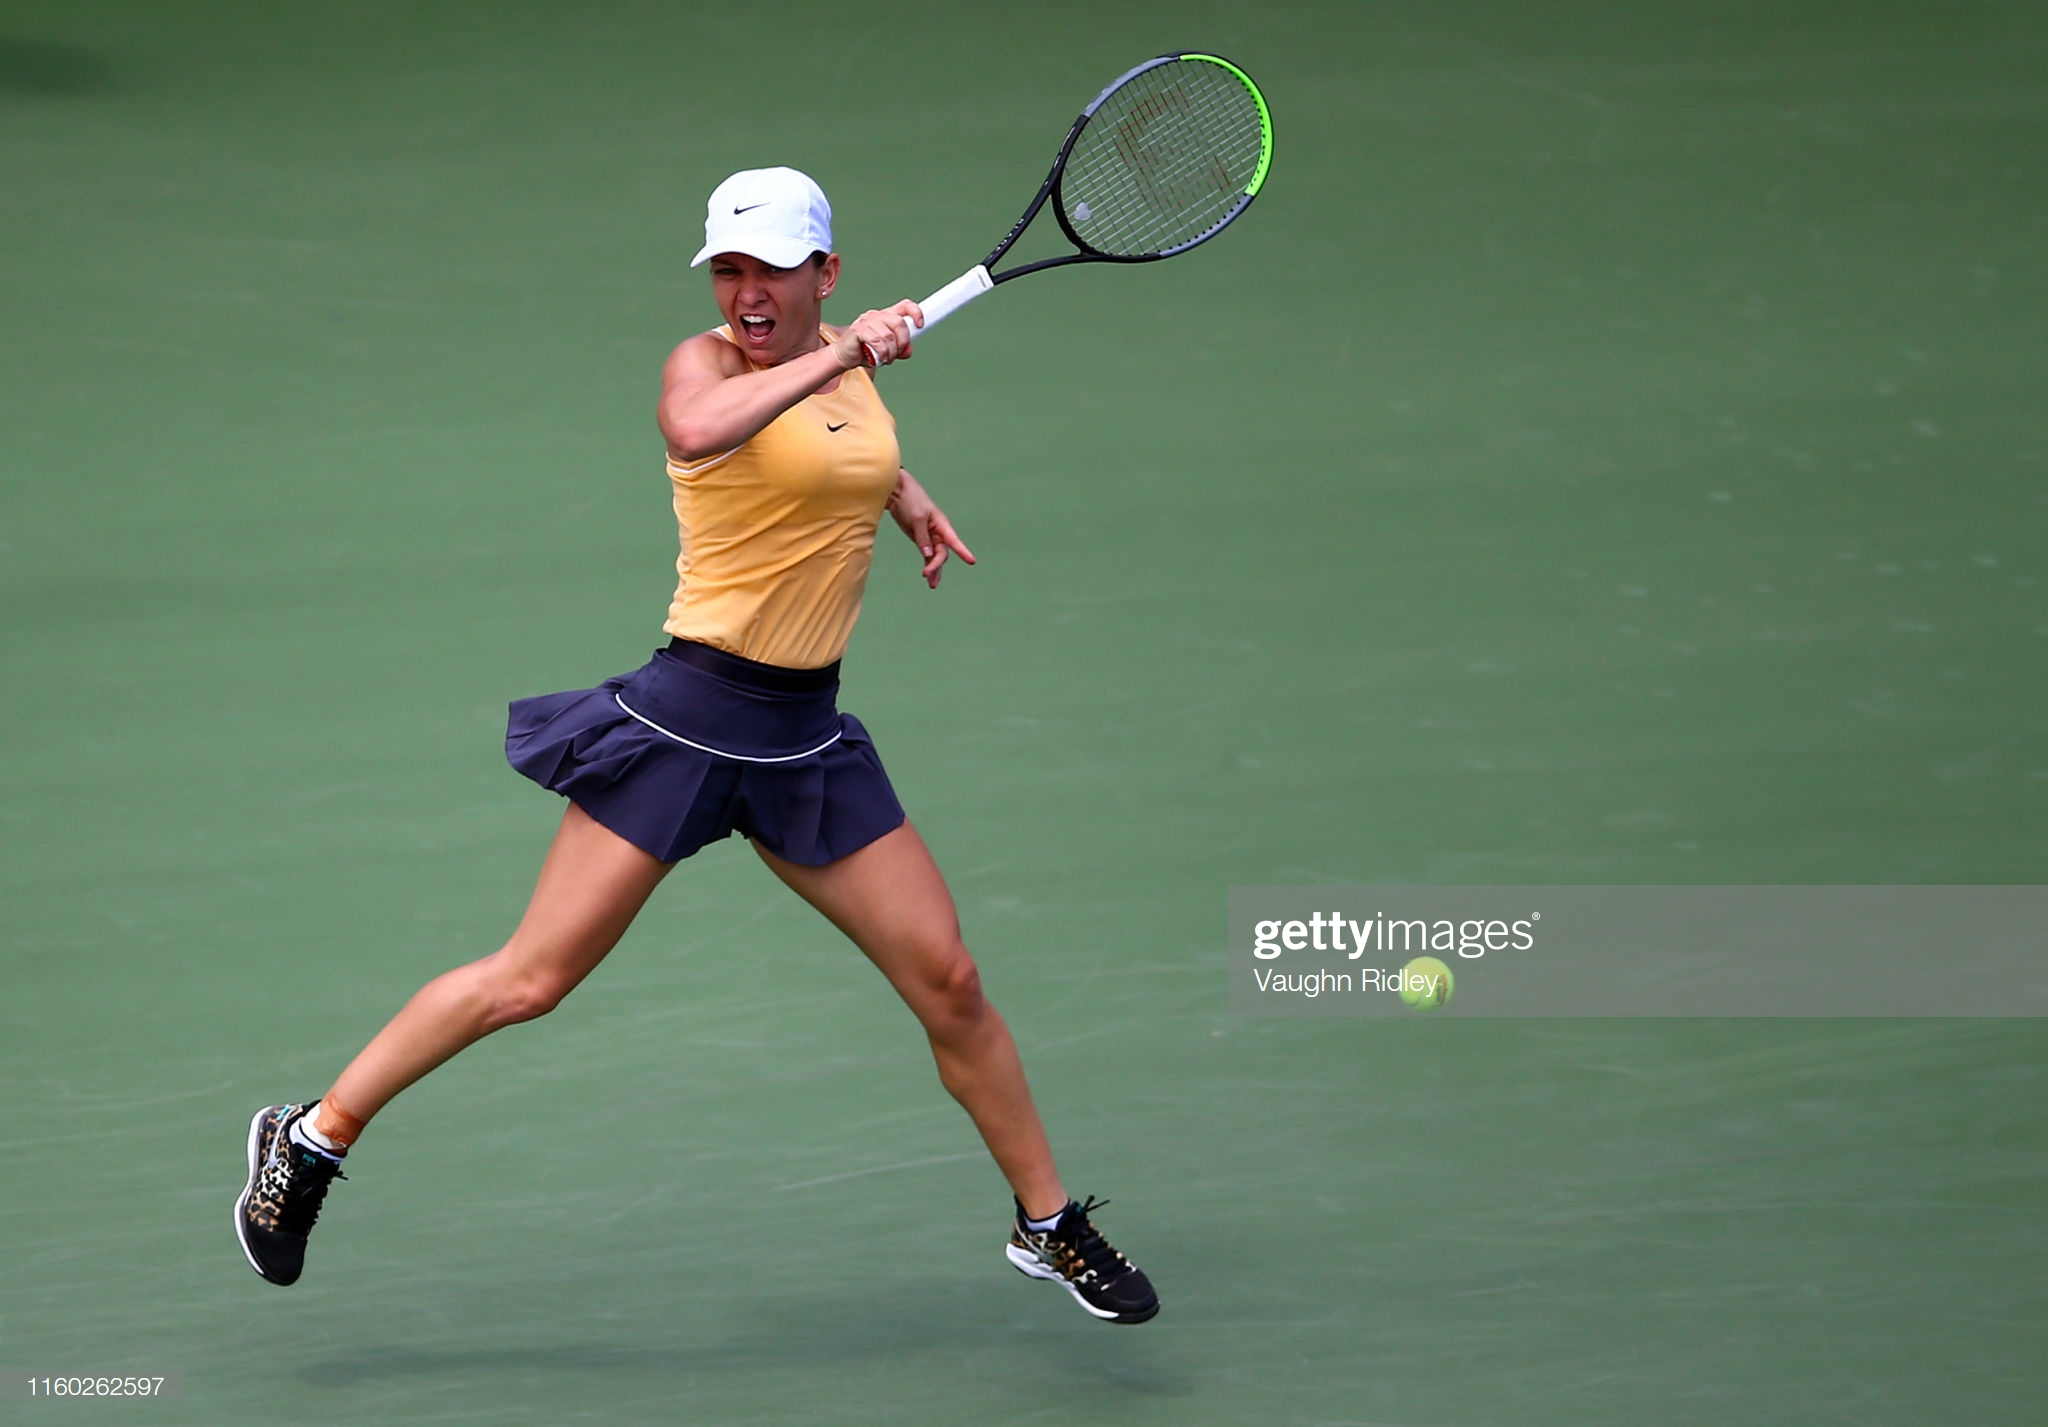 TORONTO, ON - AUGUST 07: Simona Halep of Romania hits a shot against Jennifer Brady of the United States during a second round match on Day 5 of the Rogers Cup at Aviva Centre on August 07, 2019 in Toronto, Canada. (Photo by Vaughn Ridley/Getty Images)